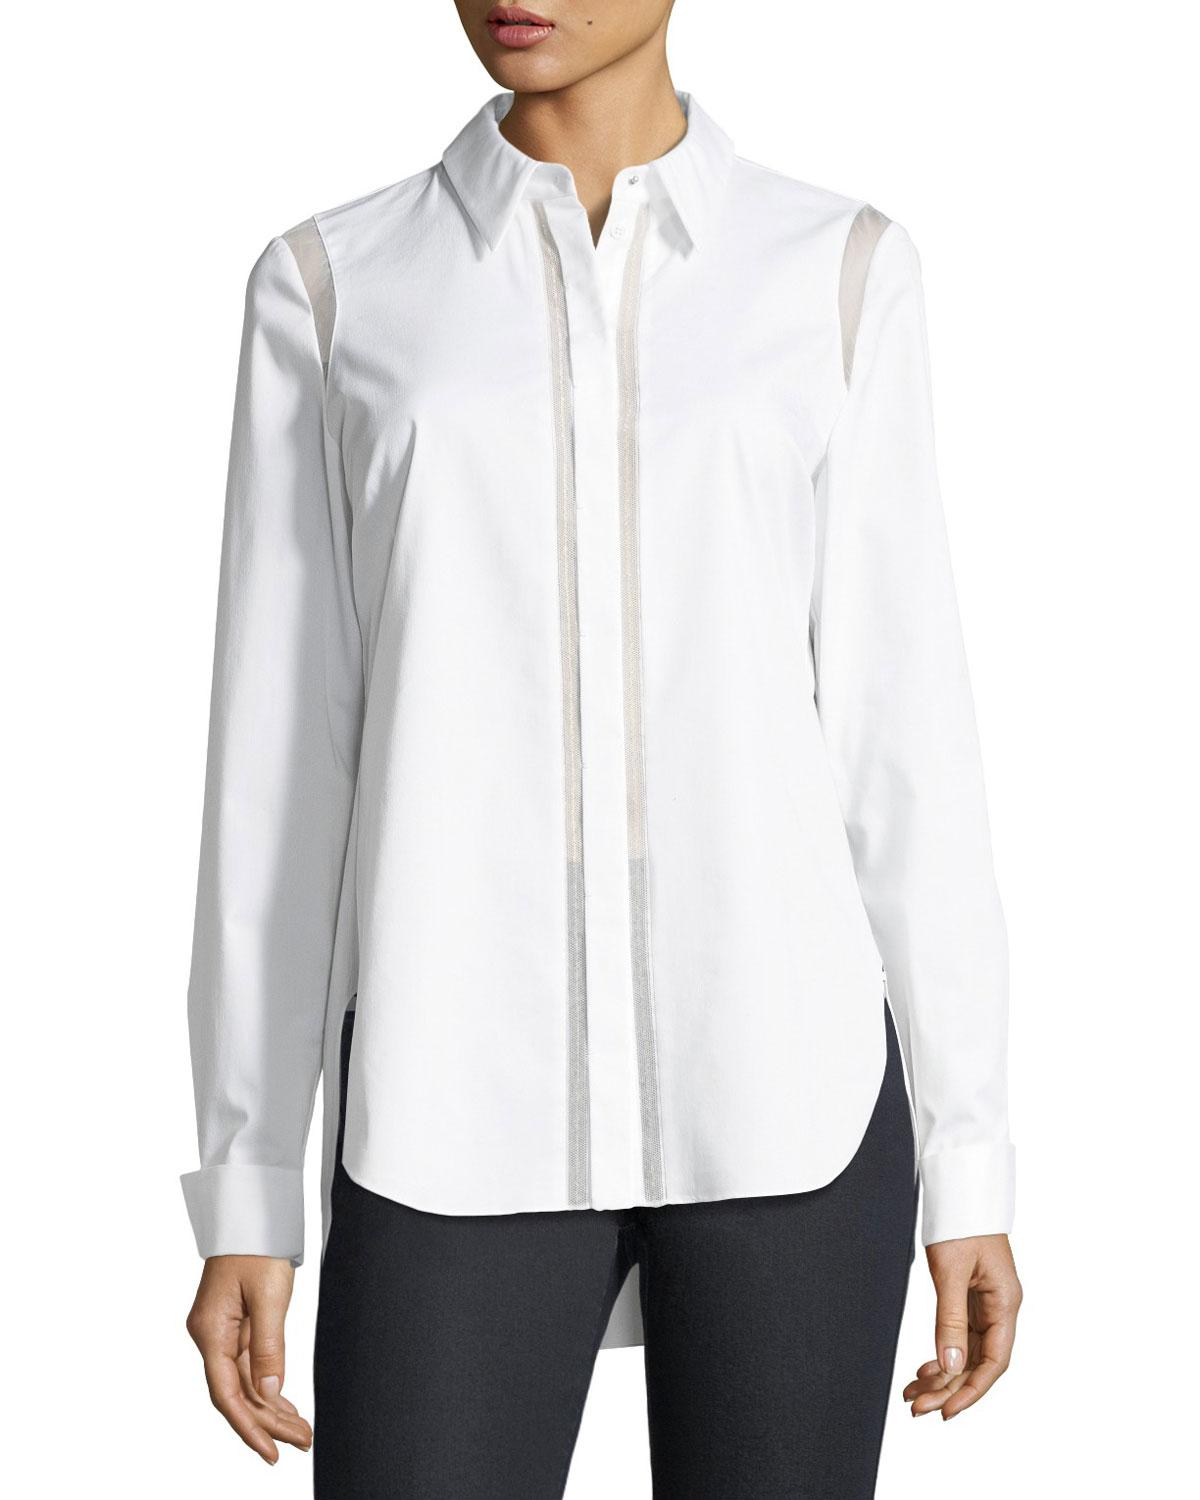 2e616b5c0401 Elie Tahari Silk-trim Top in White - Lyst